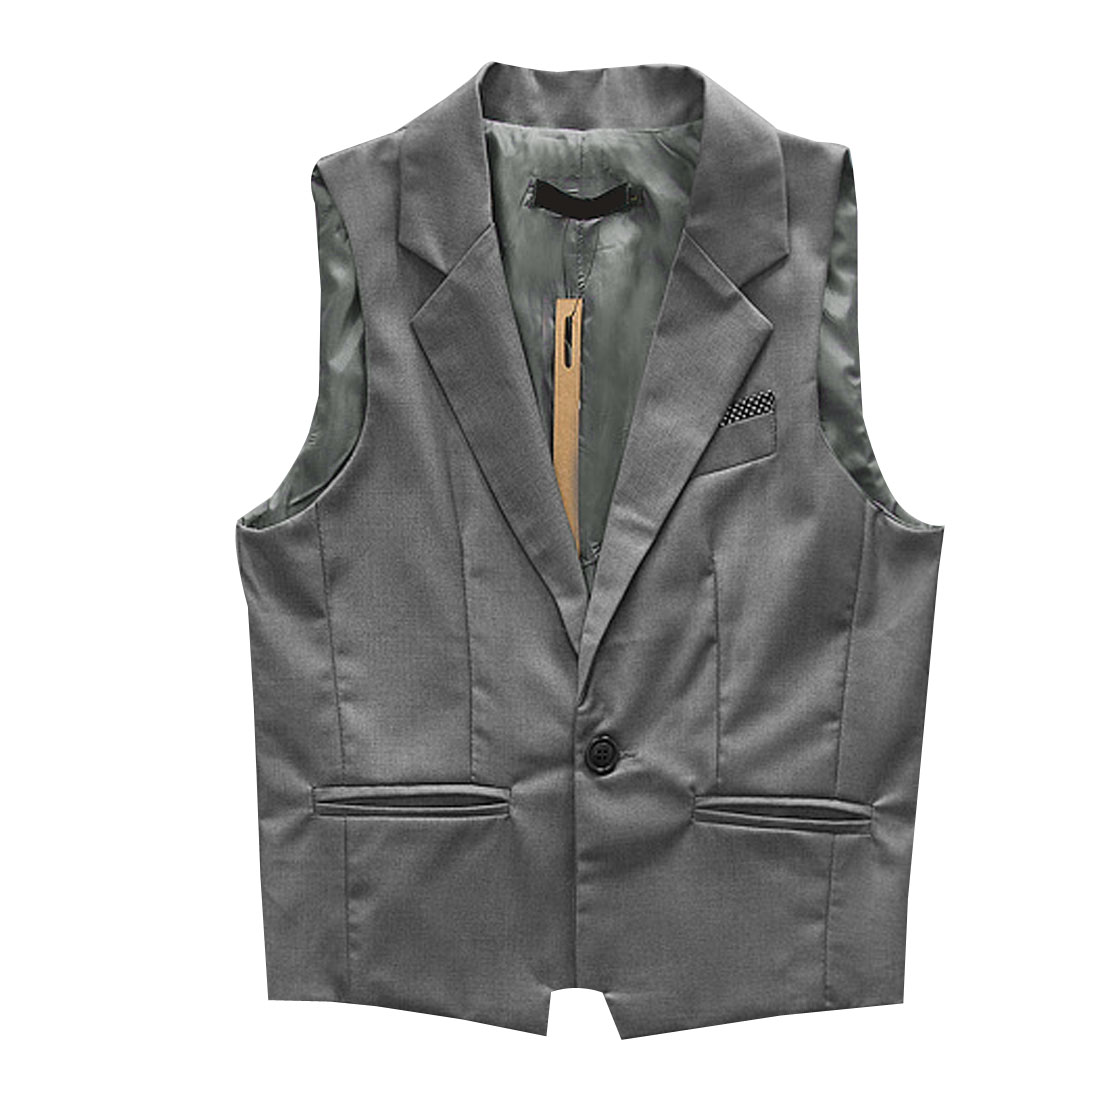 Men Medium Gray Sleeveless Dots Detail Mock Pocket Buckle Decor Back Casual Vest S